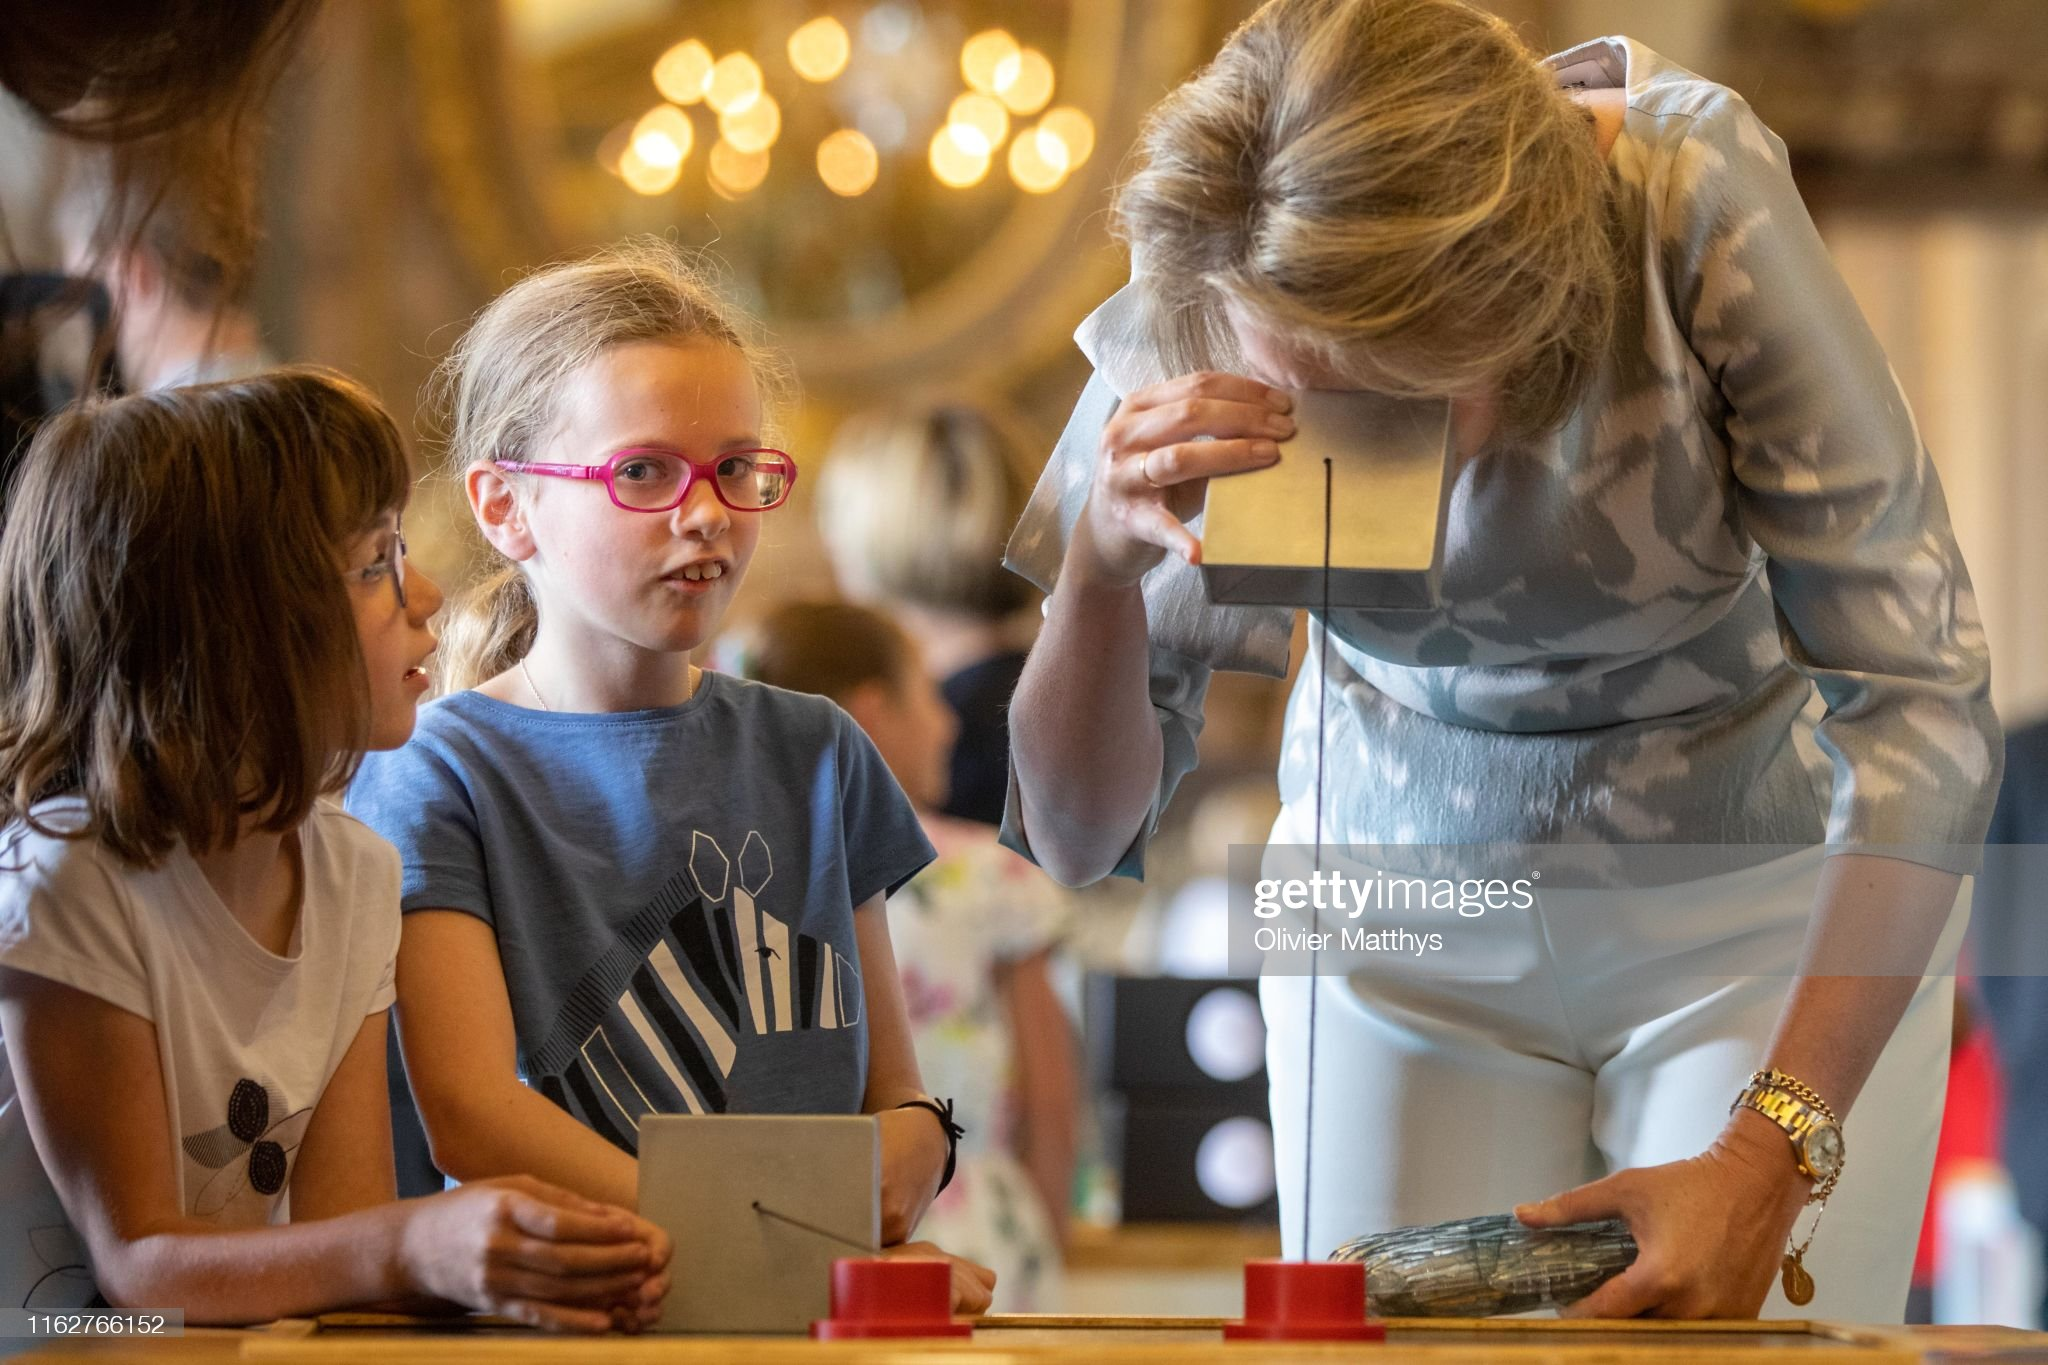 CASA REAL BELGA - Página 54 Queen-mathilde-of-belgium-attends-the-technopolis-section-of-the-at-picture-id1162766152?s=2048x2048